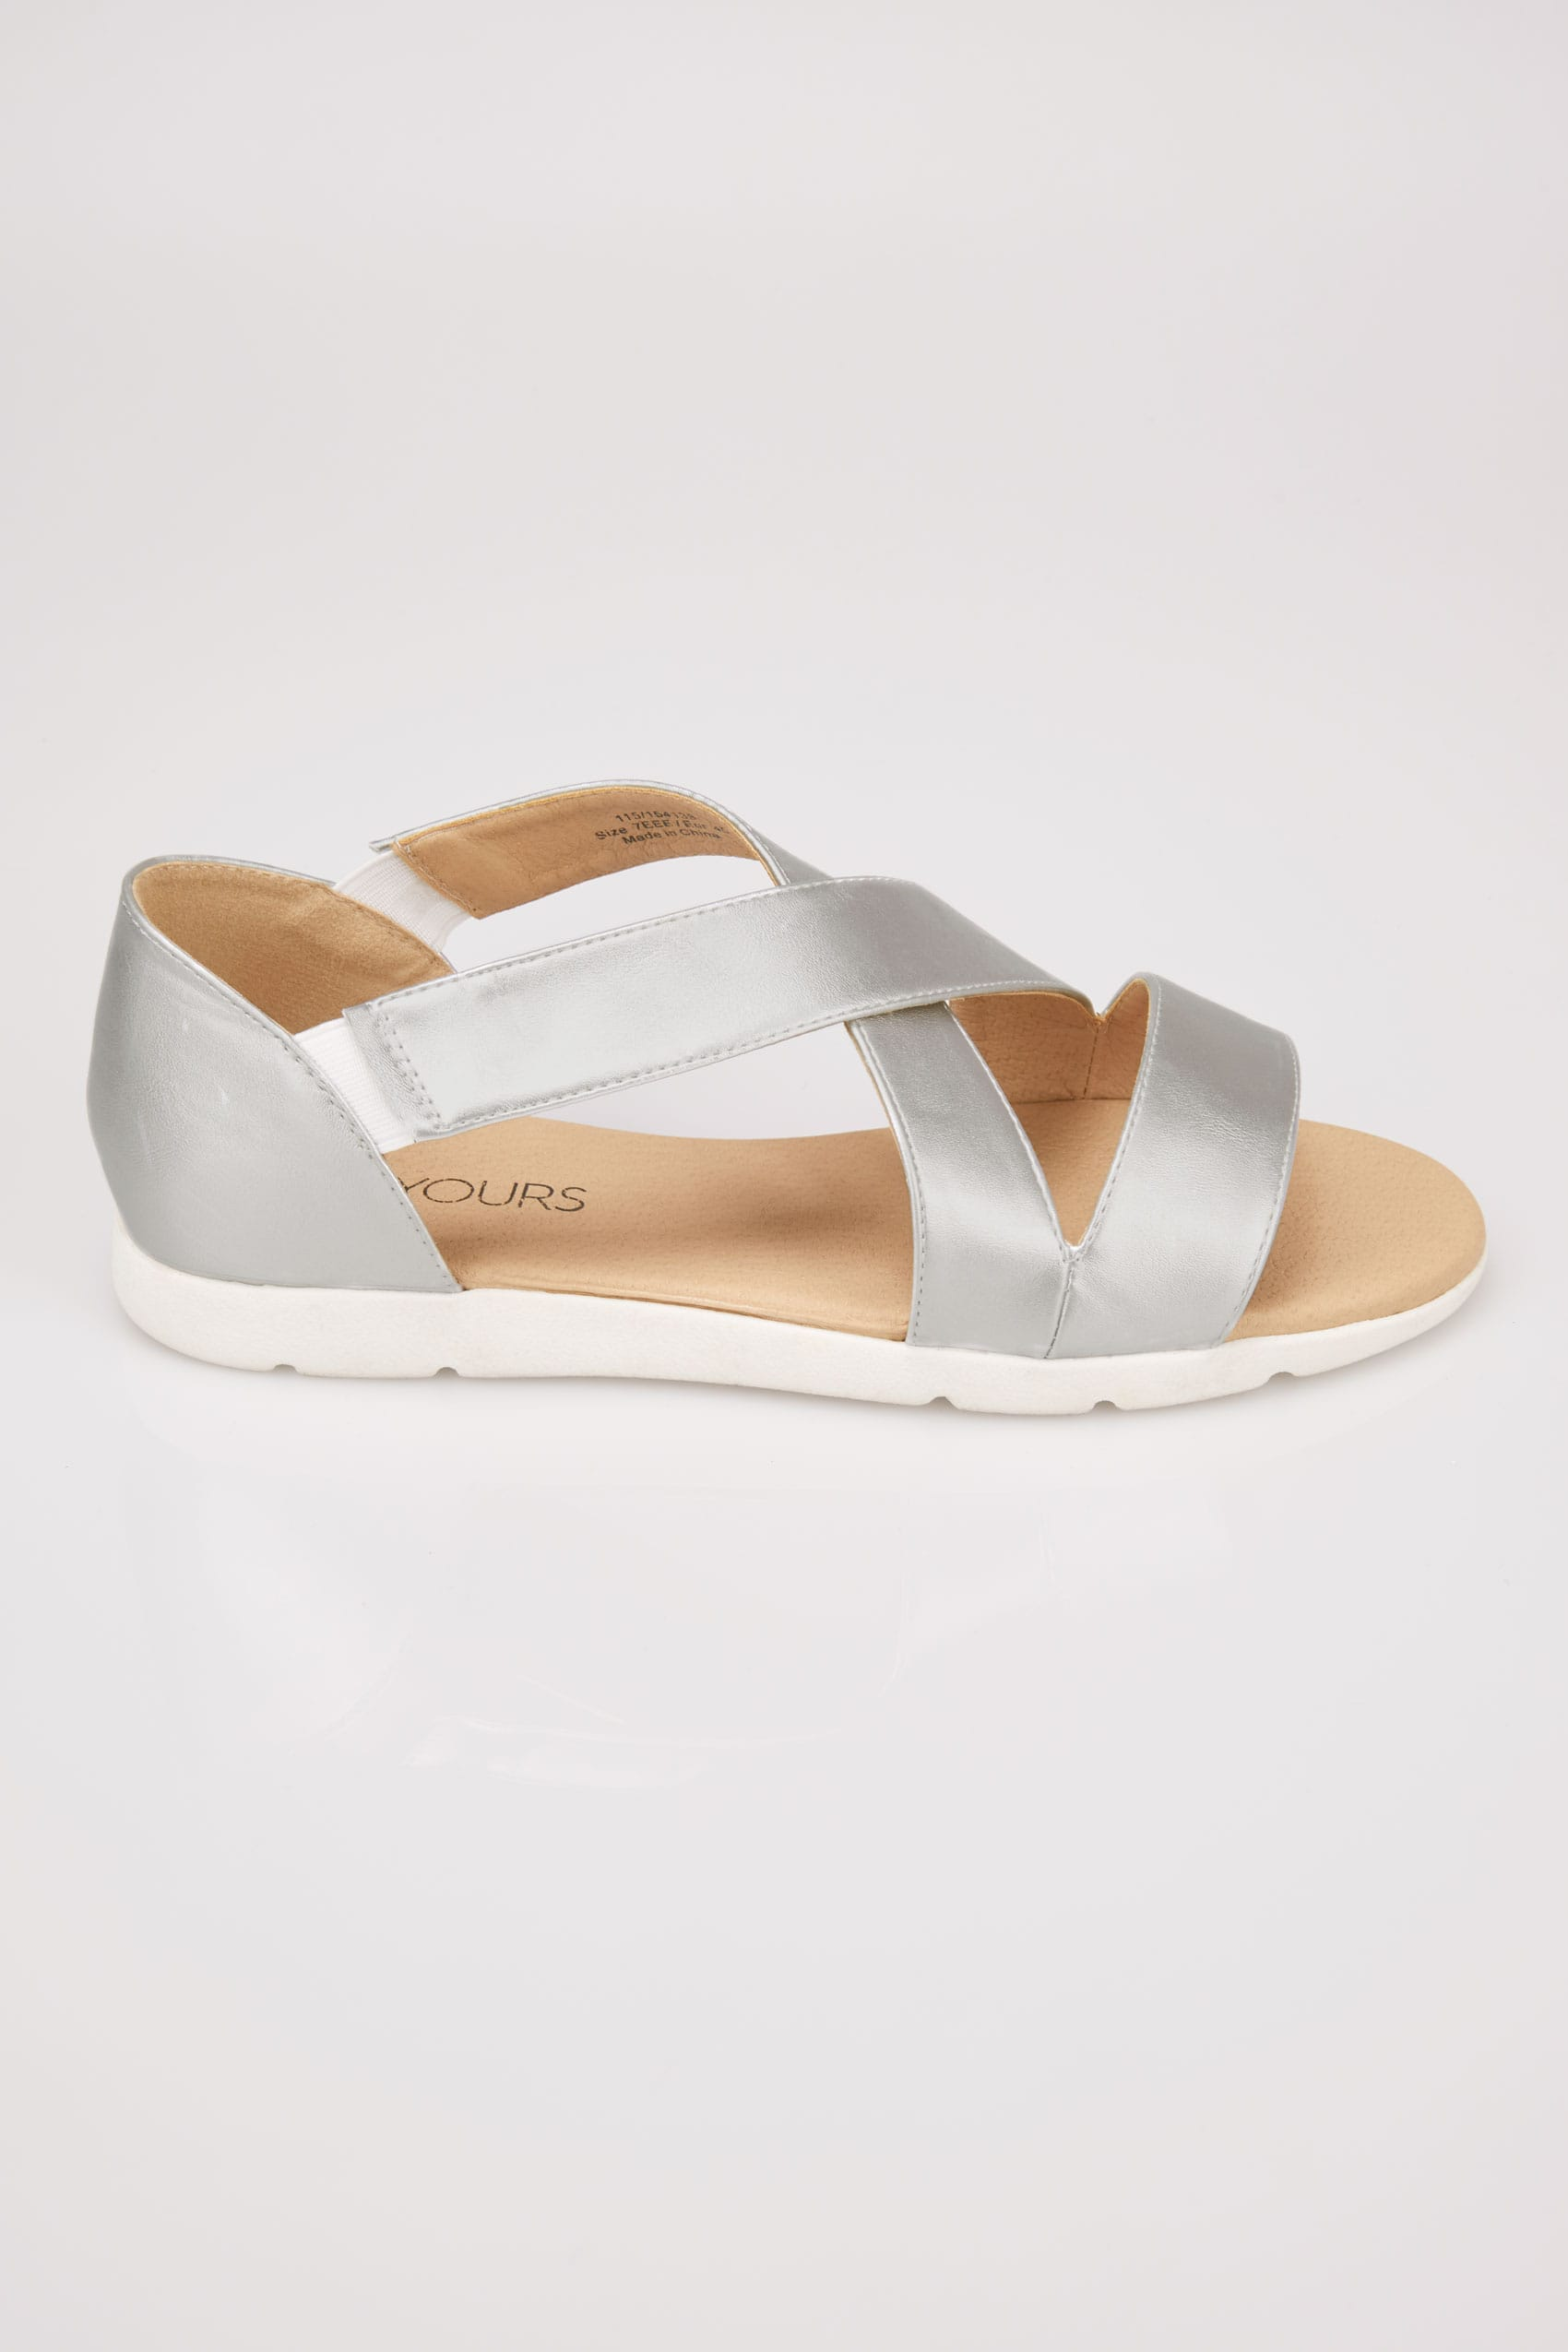 Silver Cross Over Strap Sandals In Eee Fit-3186